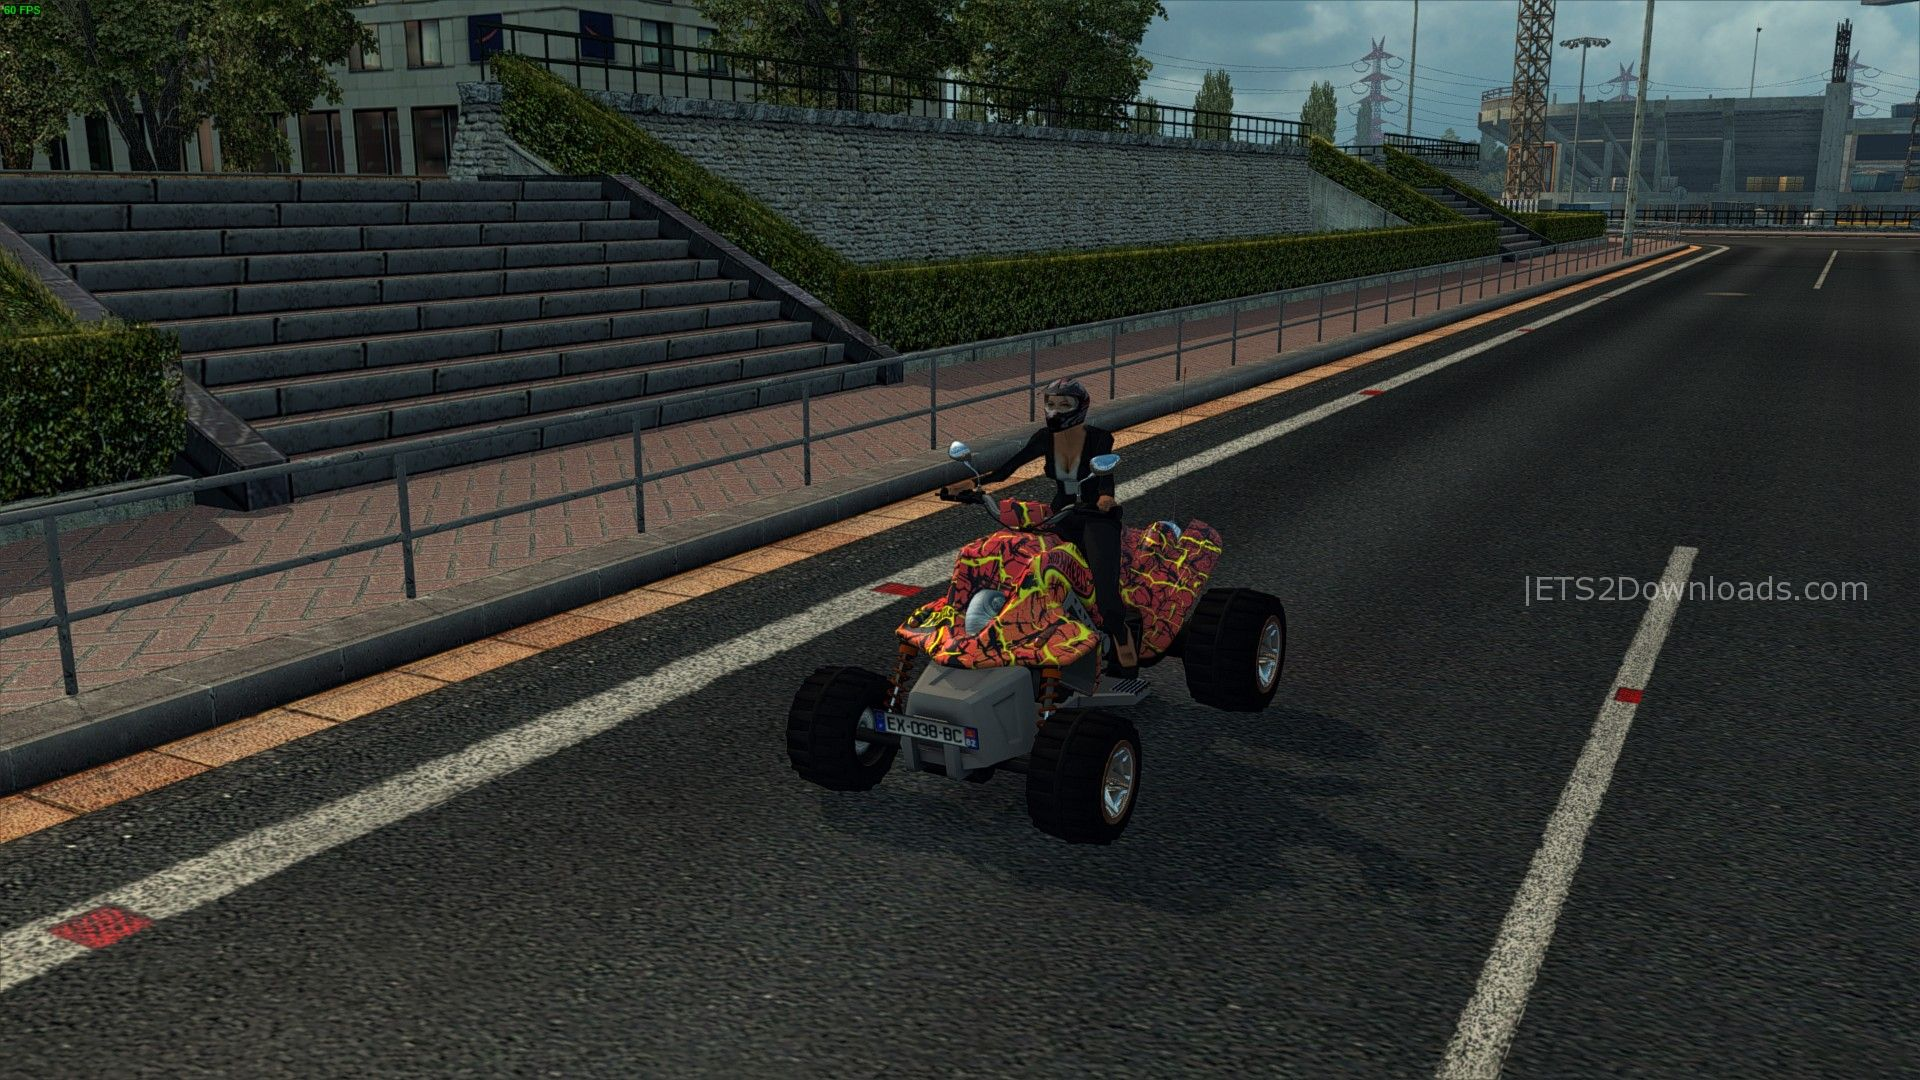 traffic-quad-bike-1